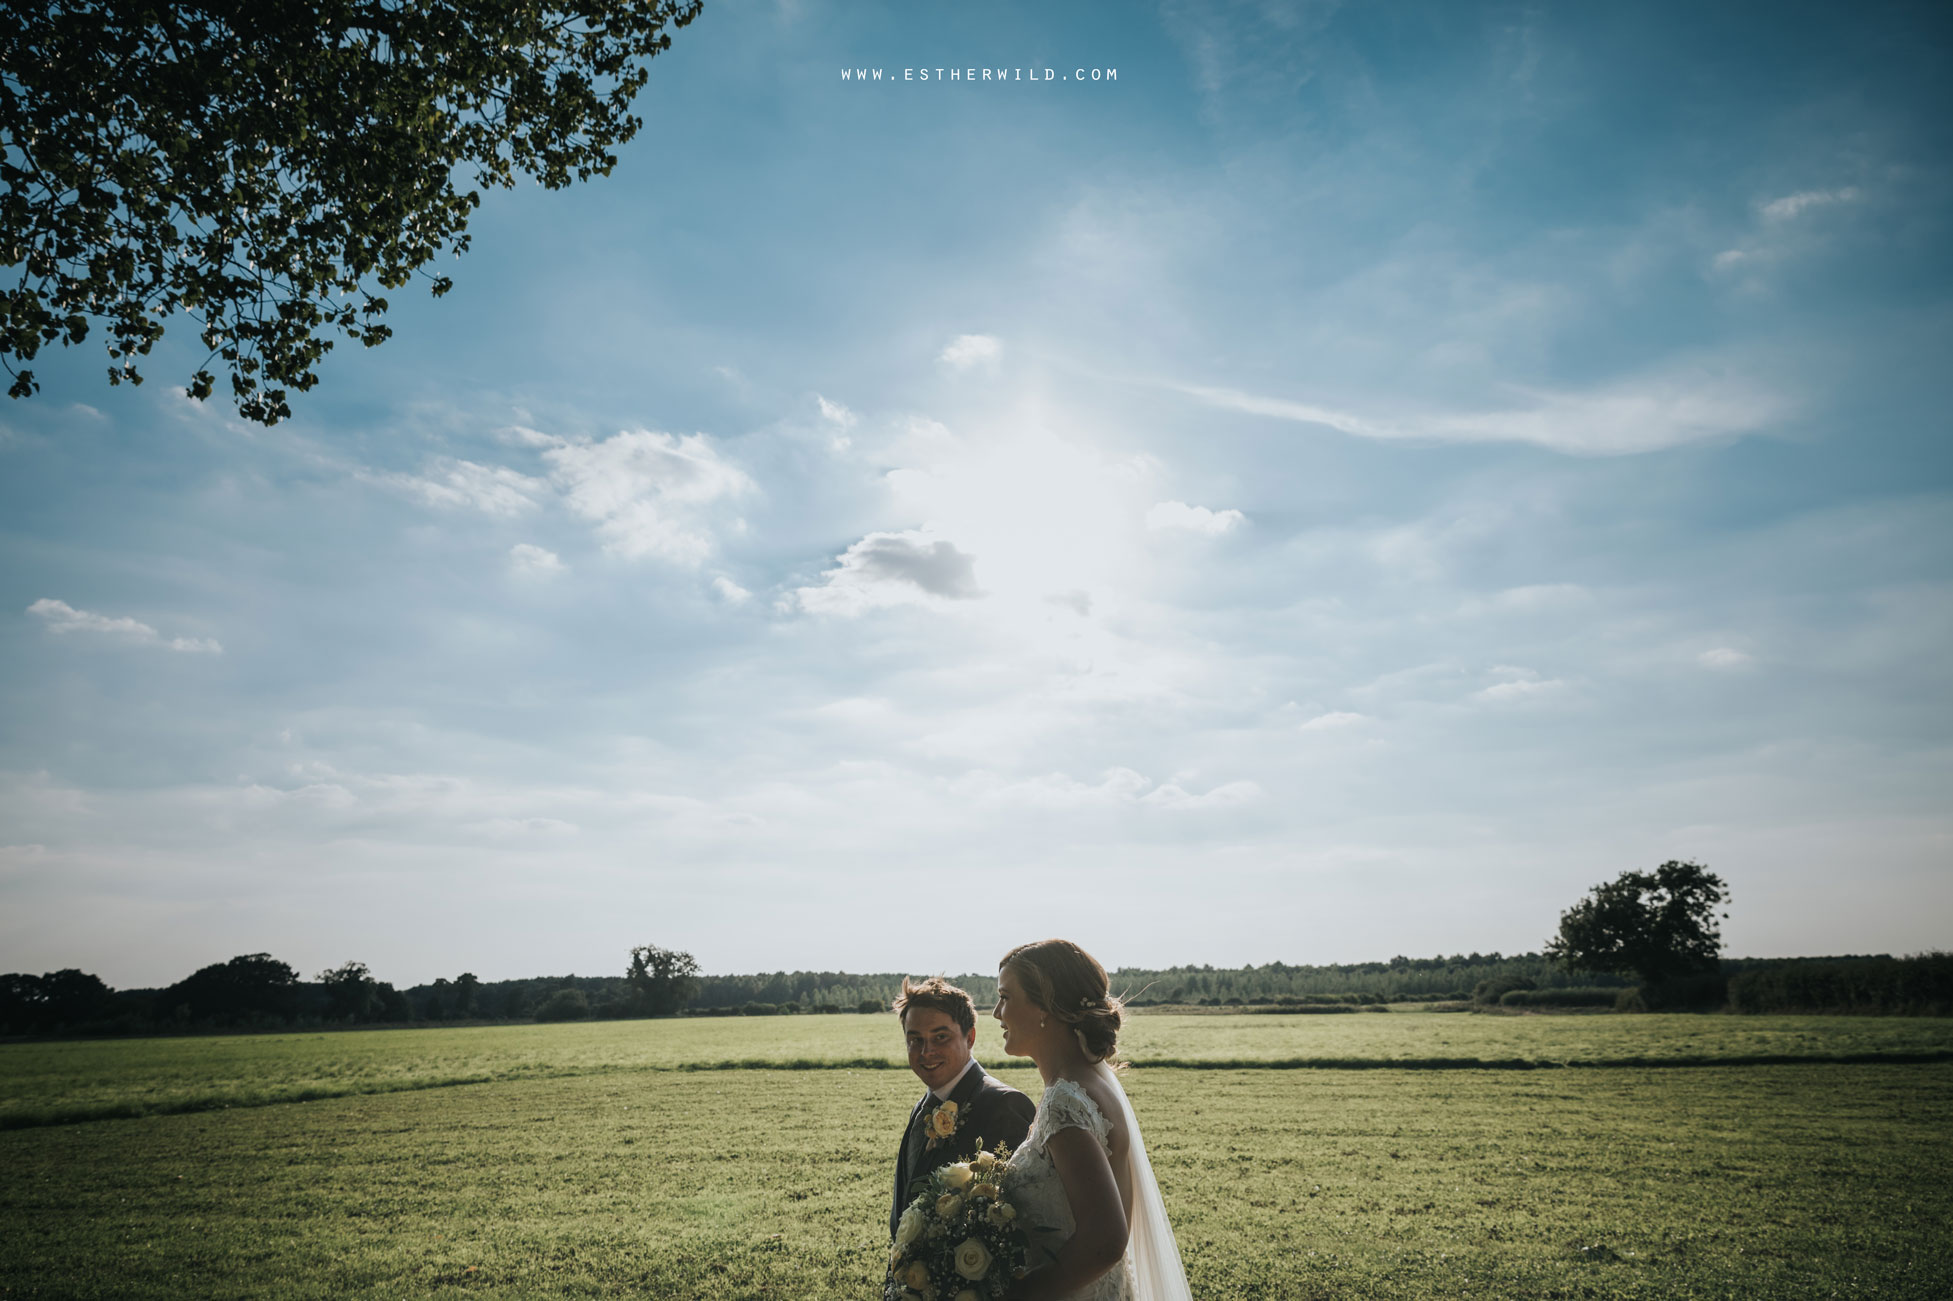 Pentney_Abbey_Wedding_Kings_Lynn_Norfolk_Esther_Wild_Wedding_Photography_IMG_1153.jpg